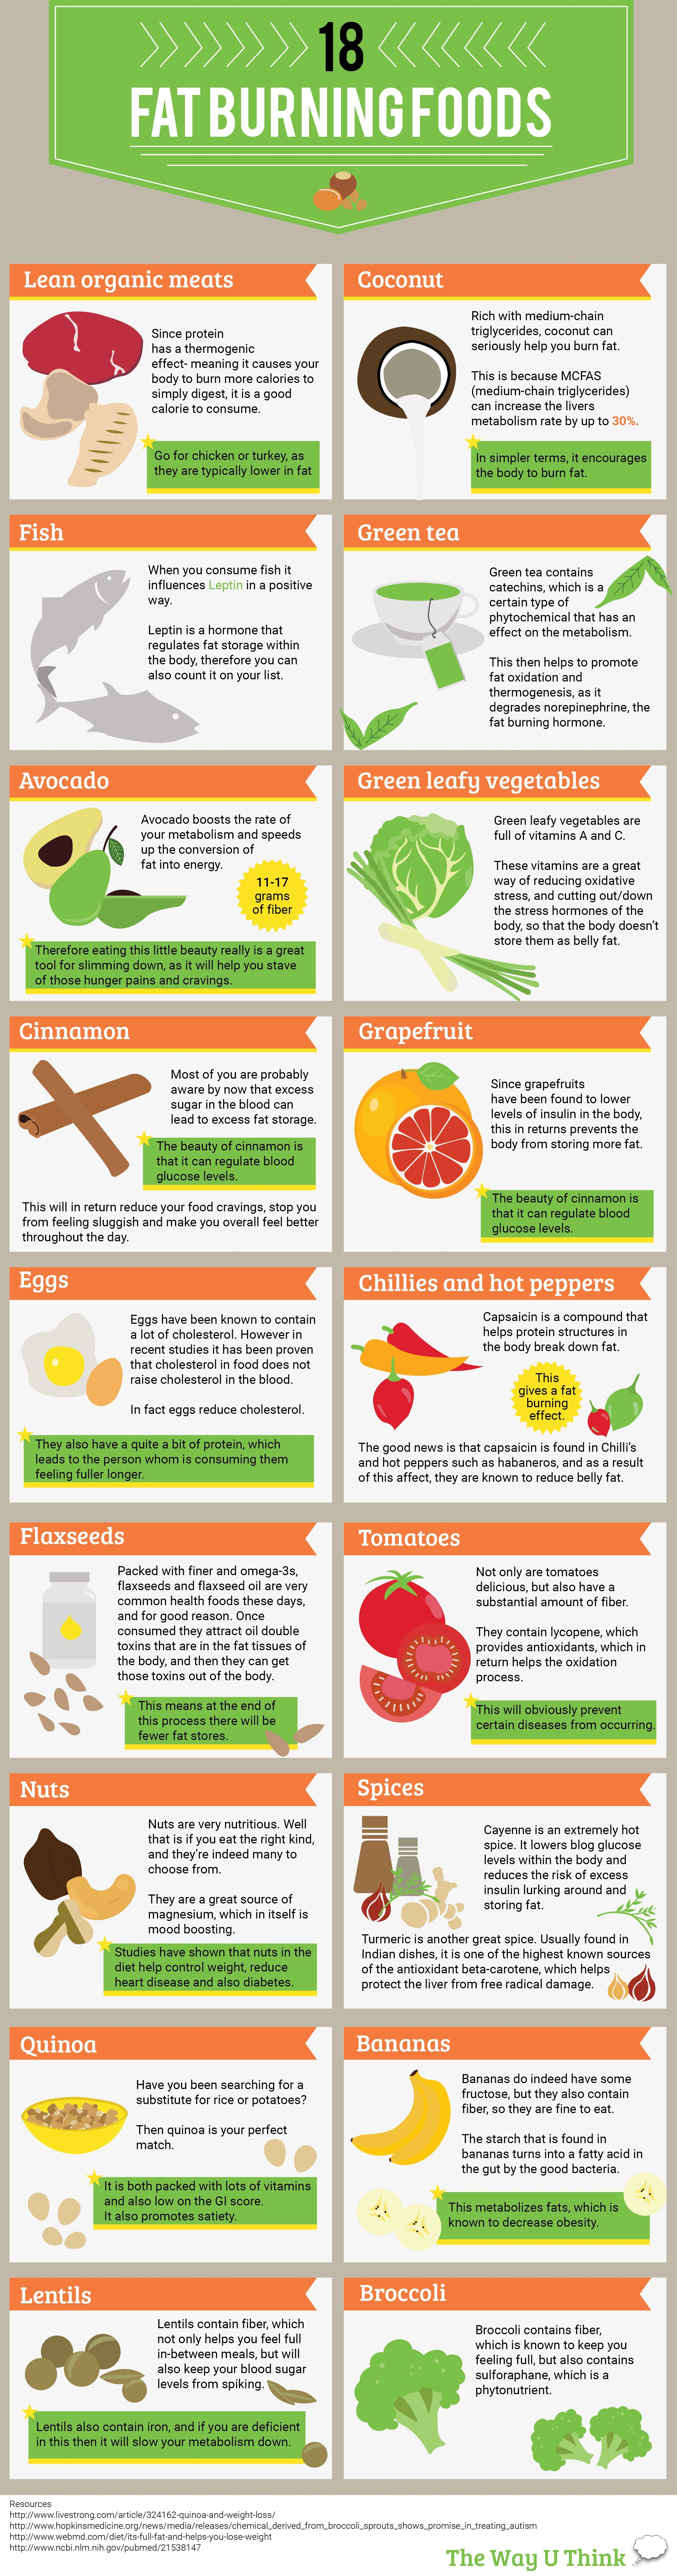 19 FAT BURNING FOODS-01 pic changed #PmsNaturalRemedies